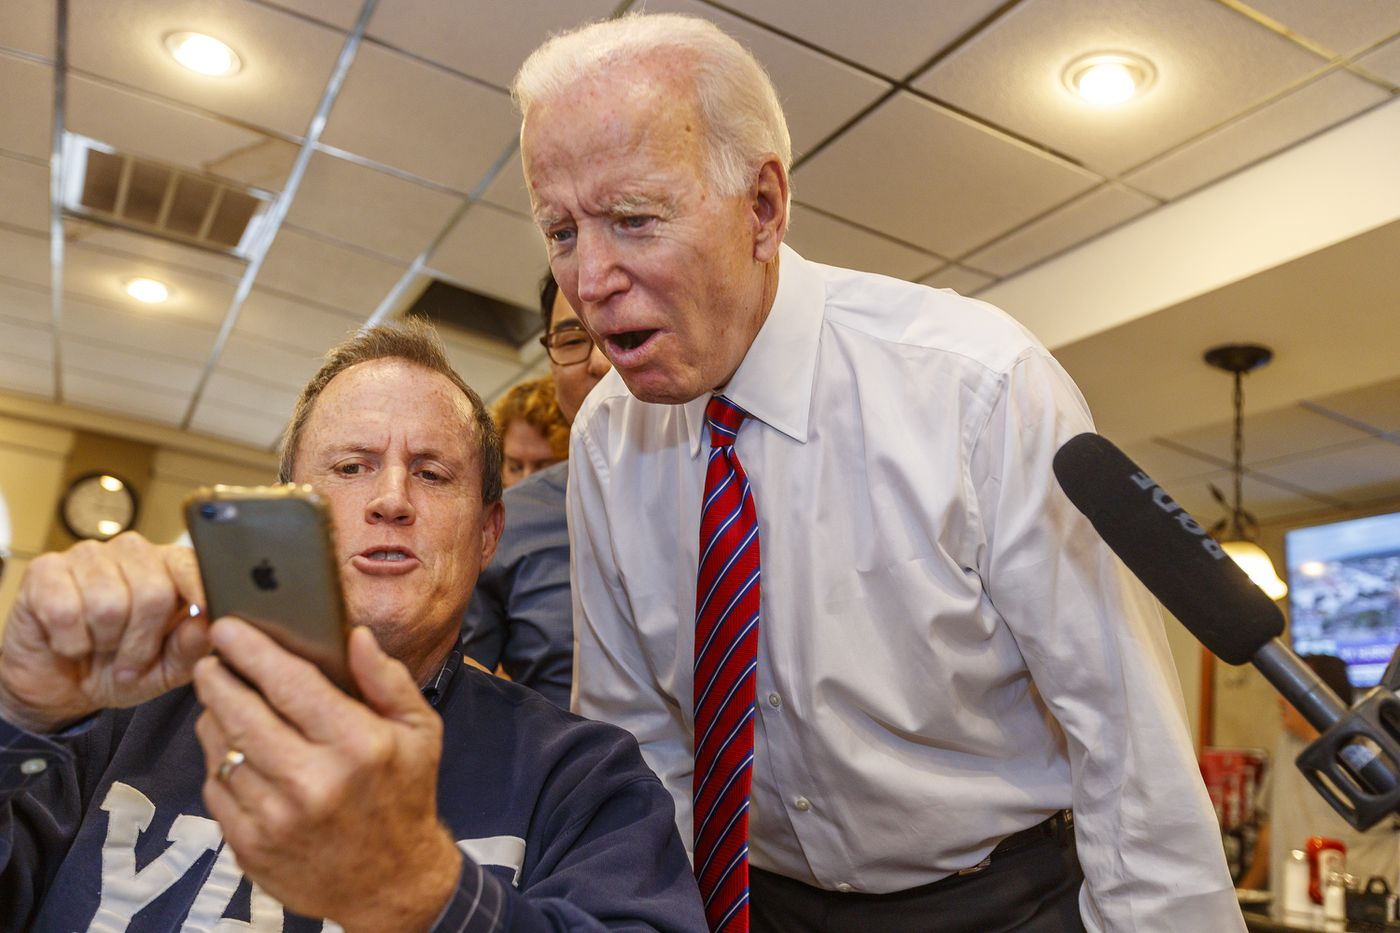 Biden @POTUS Account Reset to Zero With Trump Followers Out - 360PRWire